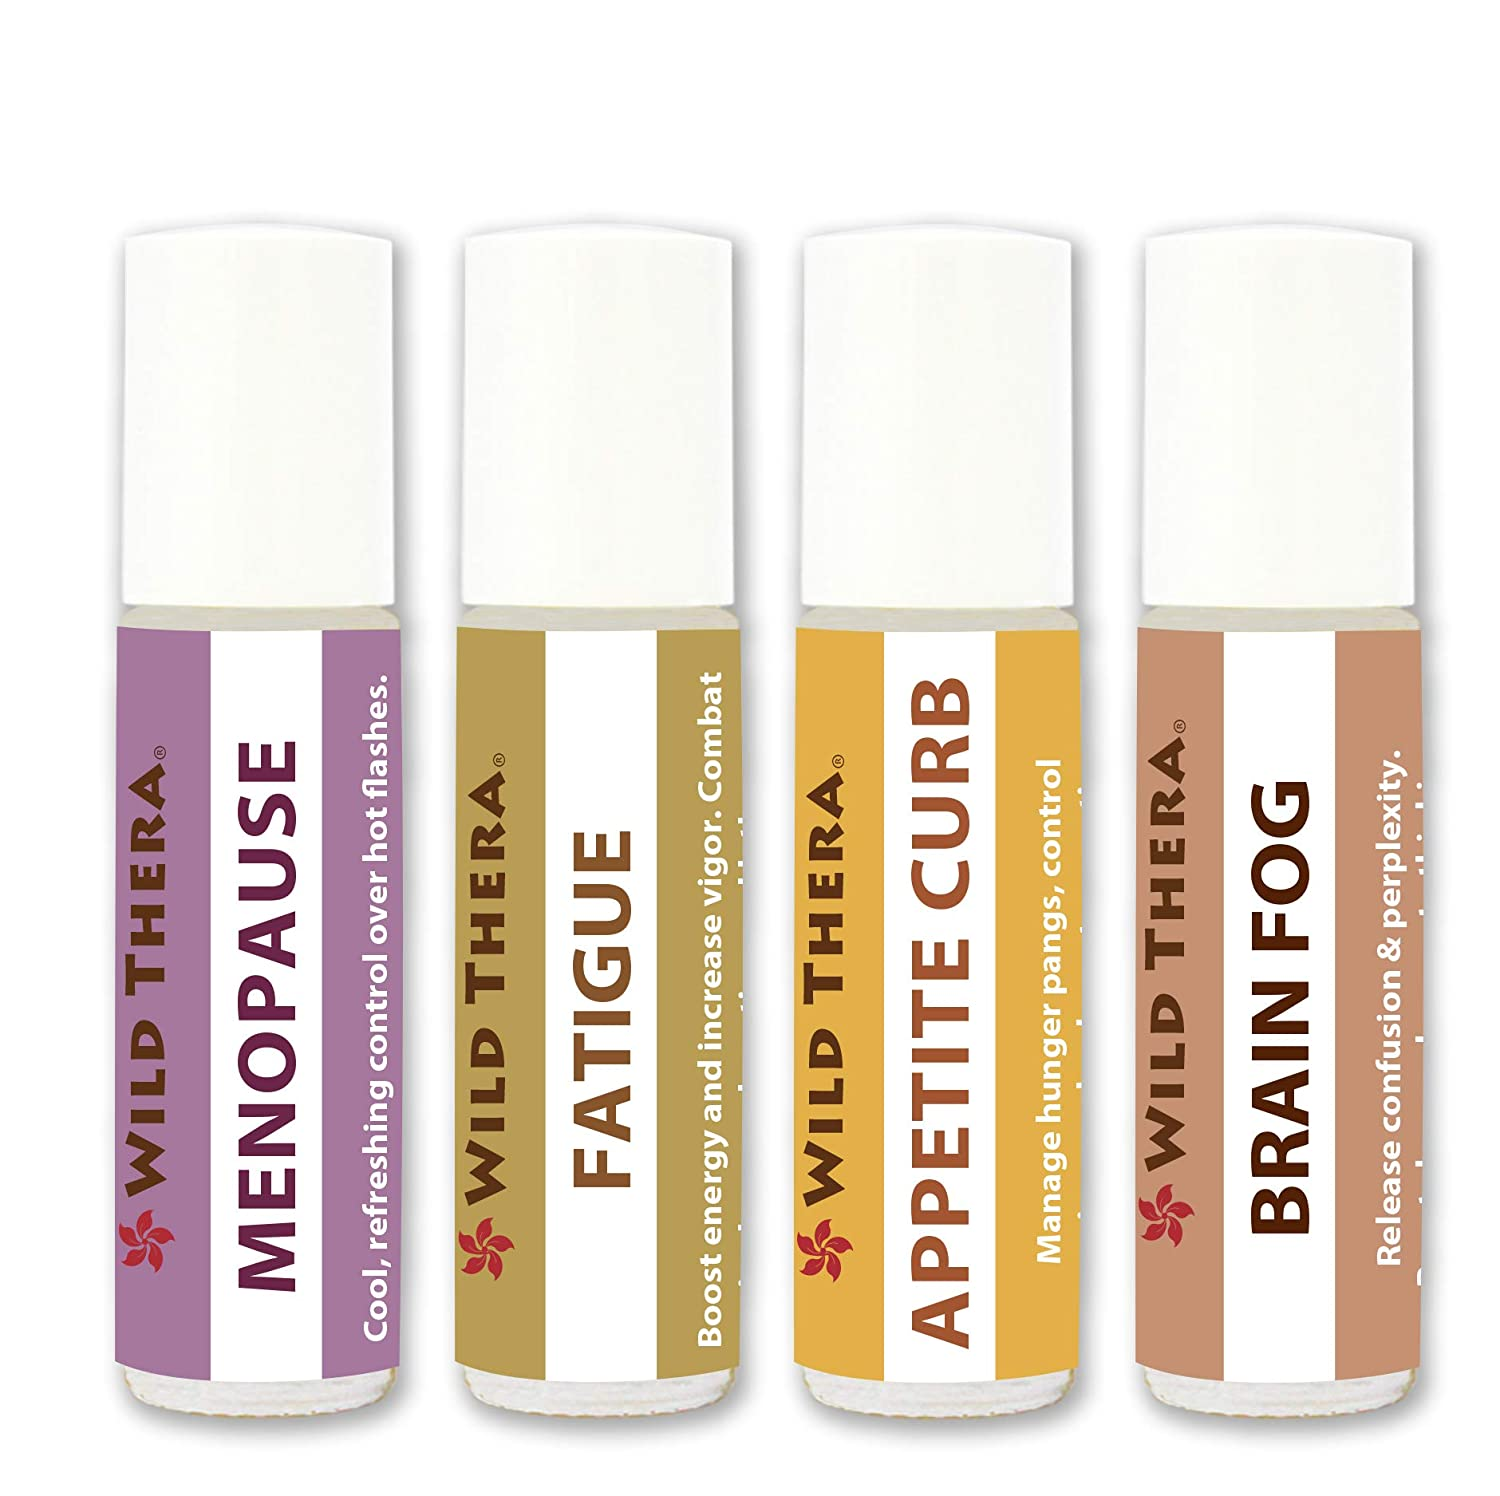 Wild Thera. Menopause Support Set of 4 x 10ml. Pure Pre-Diluted Certified Aromatherapy Oils for Food Cravings, Hot Flashes, Sweats, Chills, Mental Clarity, Fatigue, Burnout and Appetite Control.